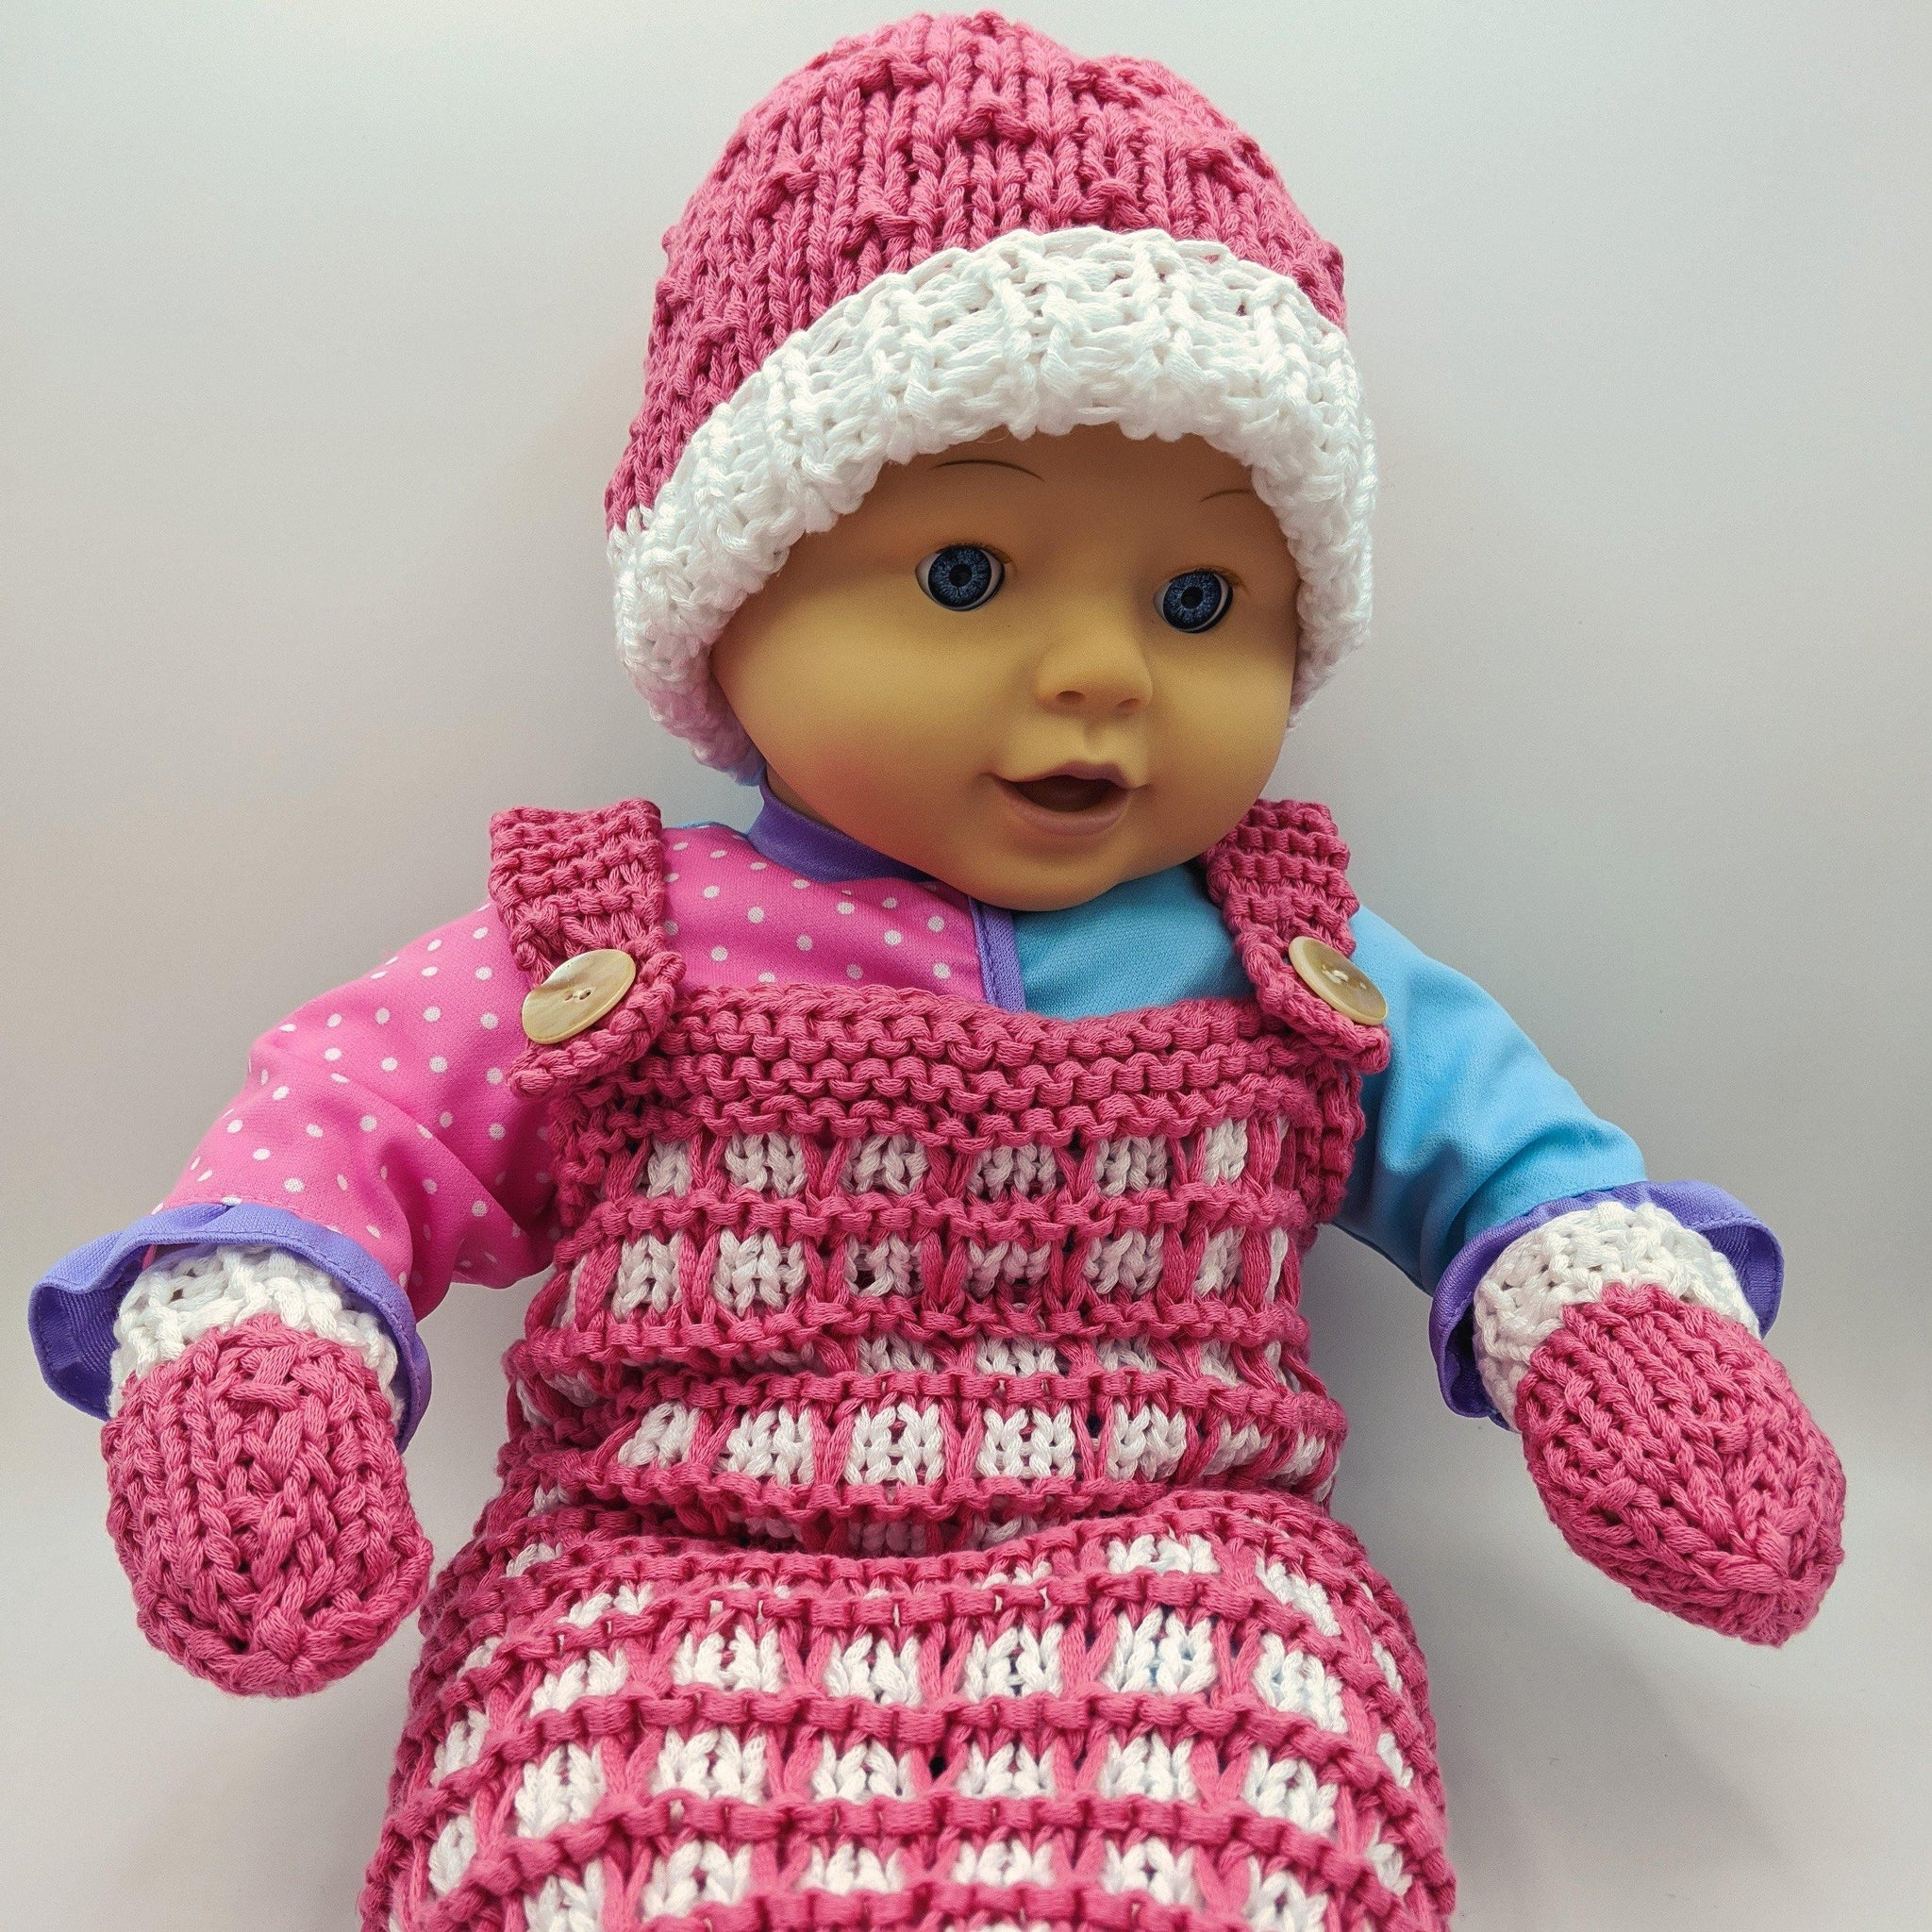 Baby Knit Set Sample - Skeino Yarn